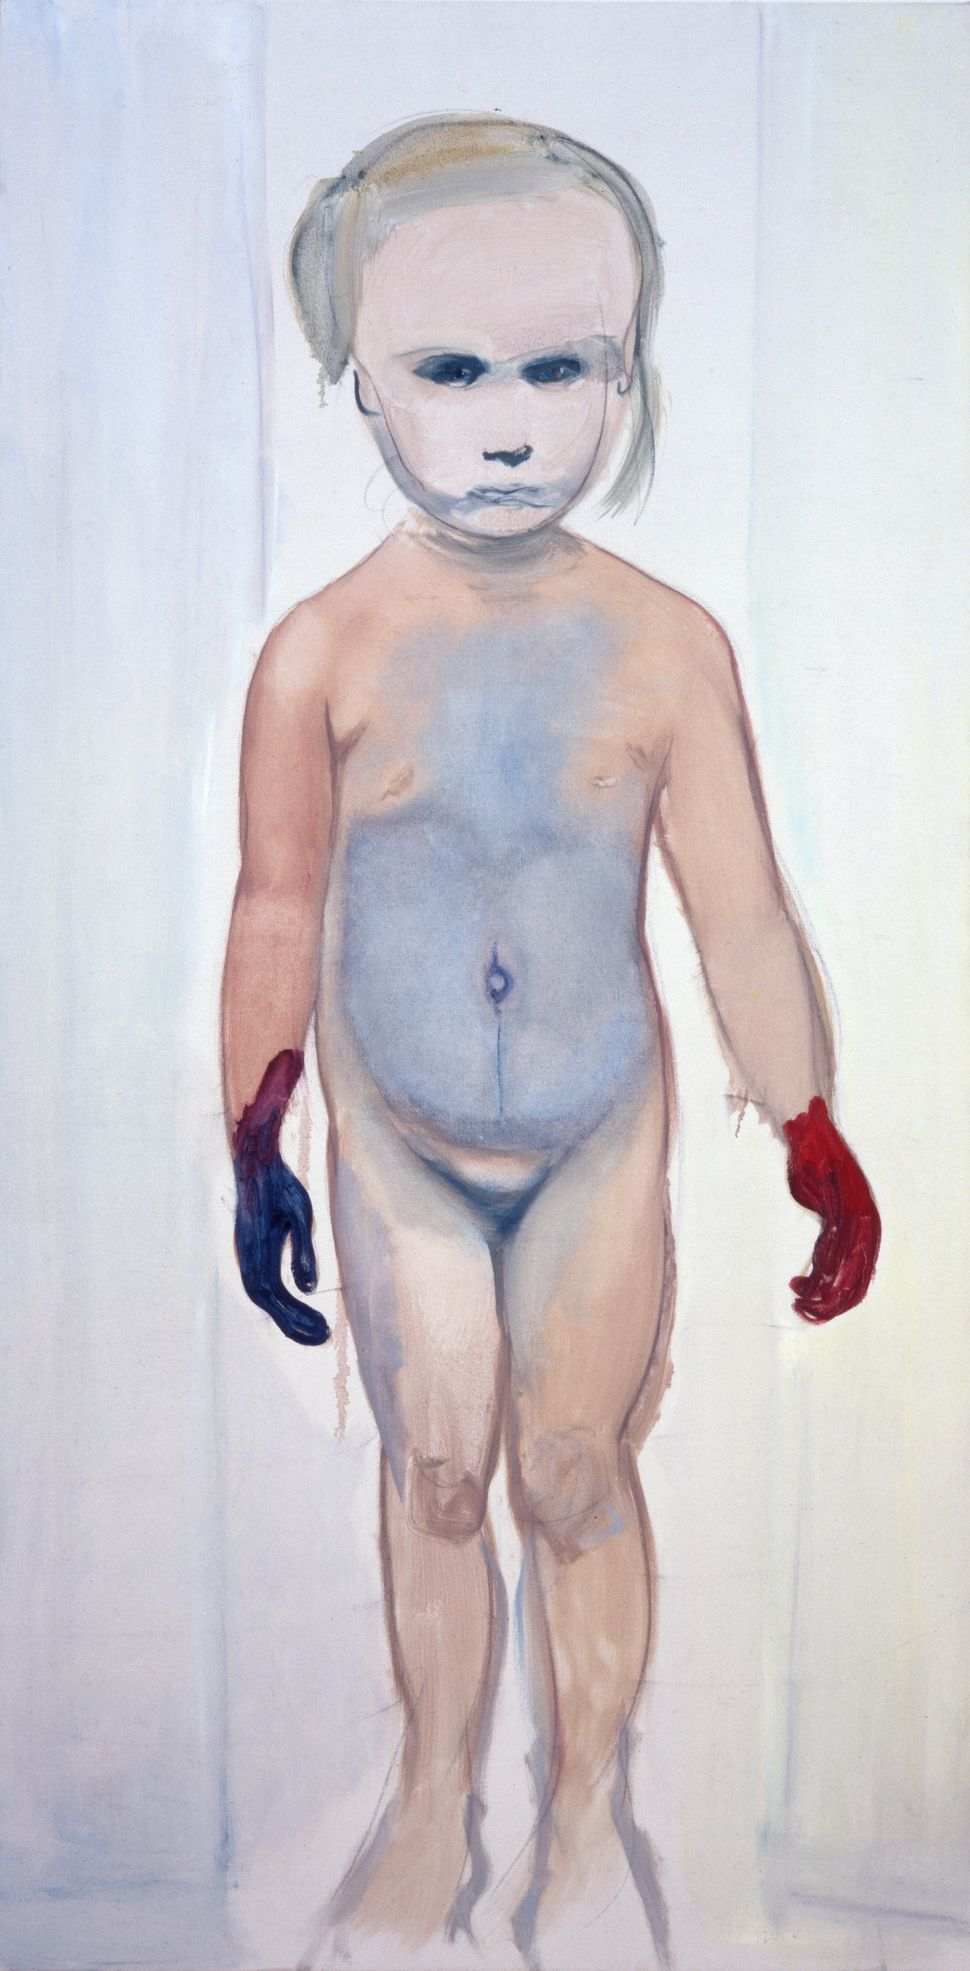 Marlene Dumas  The Painter, 1994  Oil on canvas, 200 x 100 cm  The Museum of Modern Art, New York, fractional and promised g